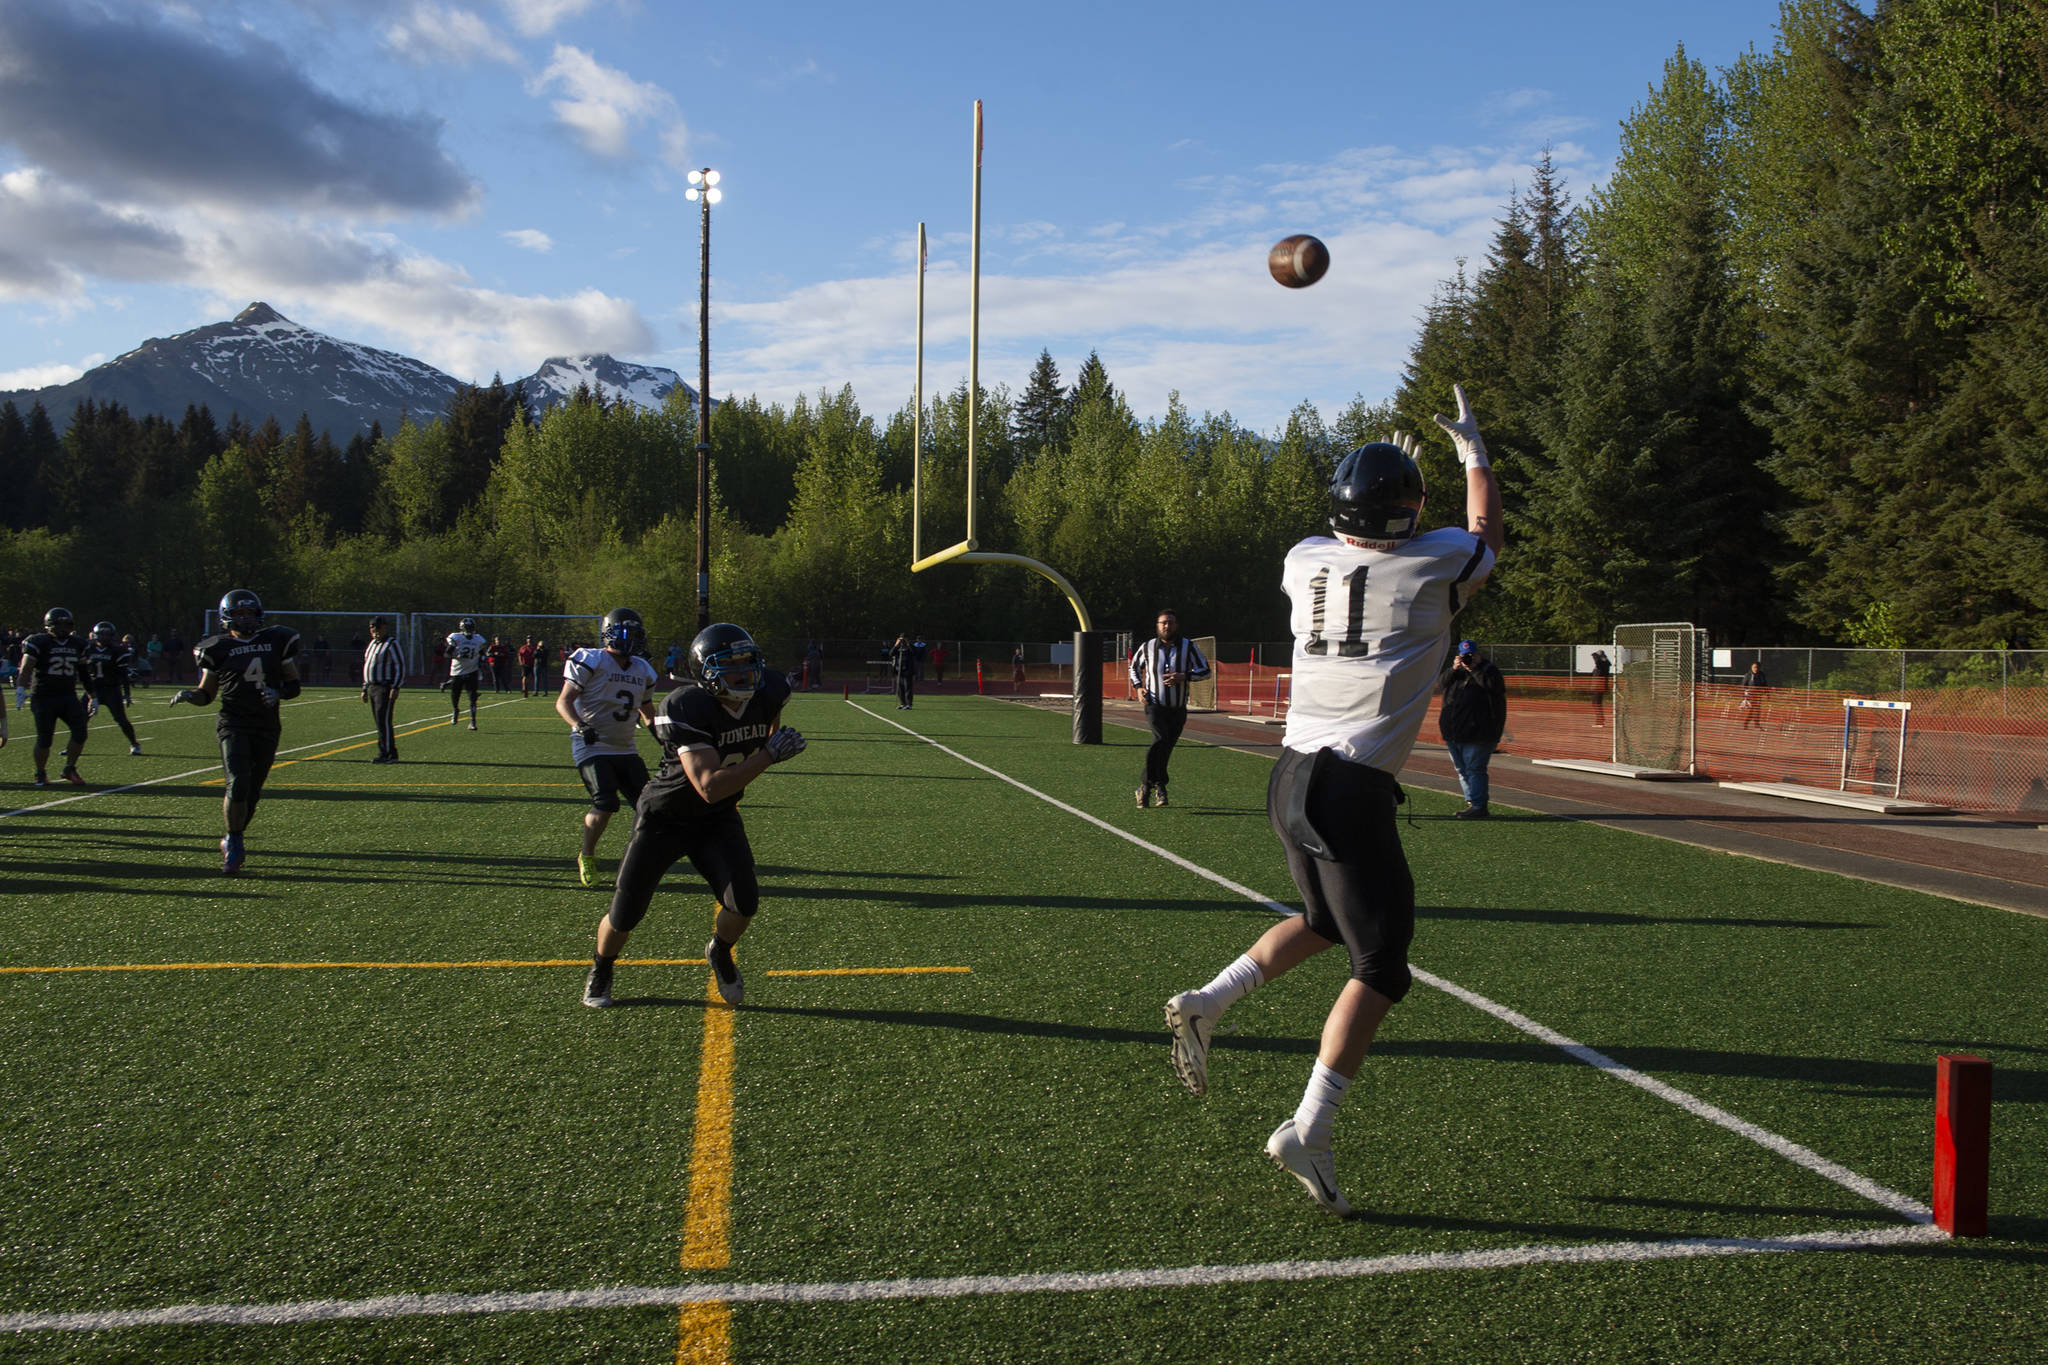 Stars' Ryan Fagerstrom makes a reception for the first touchdown of the night at the Juneau Alumni Football Game with football players, dance team members and cheerleaders from Juneau-Douglas and Thunder Mountain High Schools at Adair-Kennedy Memorial Field on Friday, May 24, 2019. (Michael Penn | Juneau Empire)